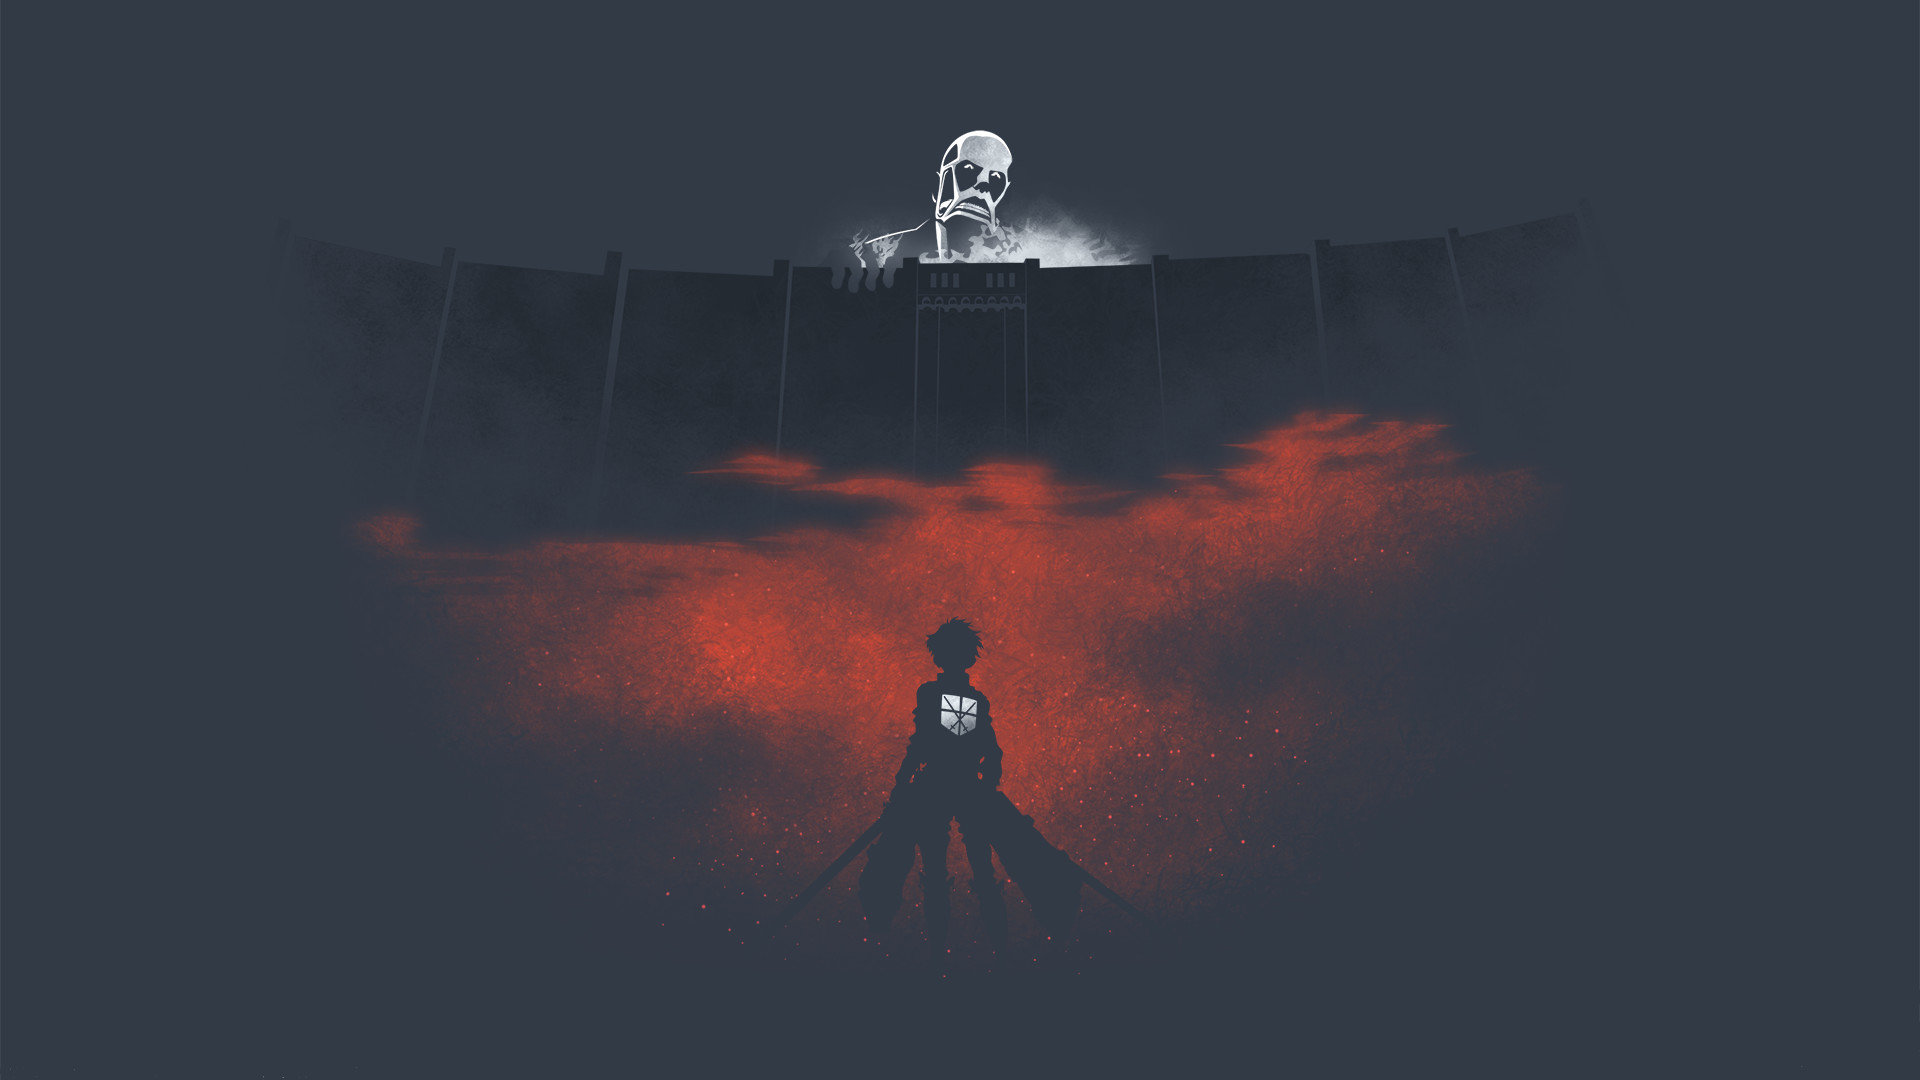 Attack On Titan Wallpapers 1920x1080 Full Hd 1080p Desktop Backgrounds